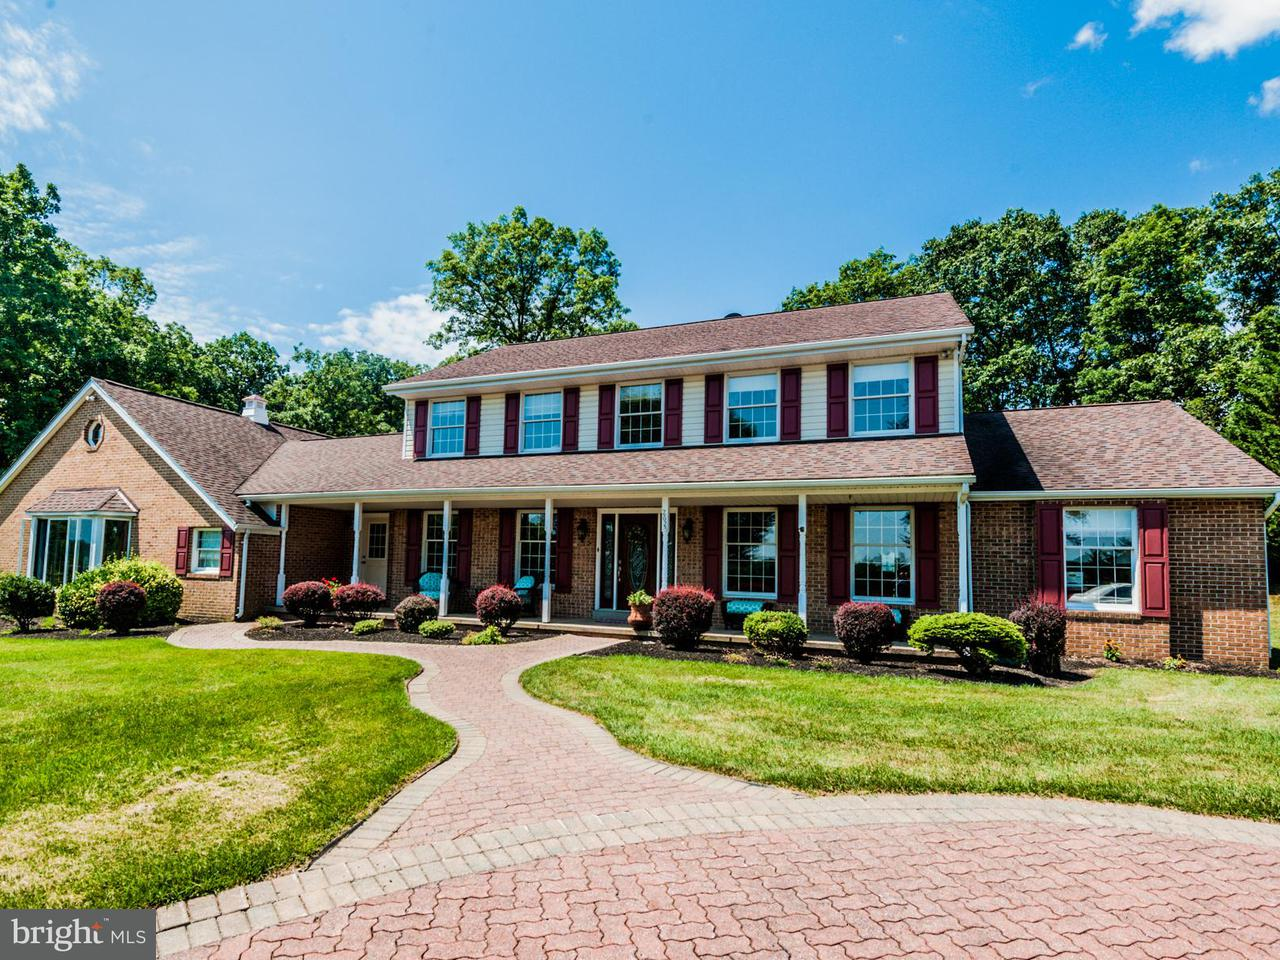 Single Family Home for Sale at 2625 OLD WASHINGTON Road 2625 OLD WASHINGTON Road Westminster, Maryland 21157 United States